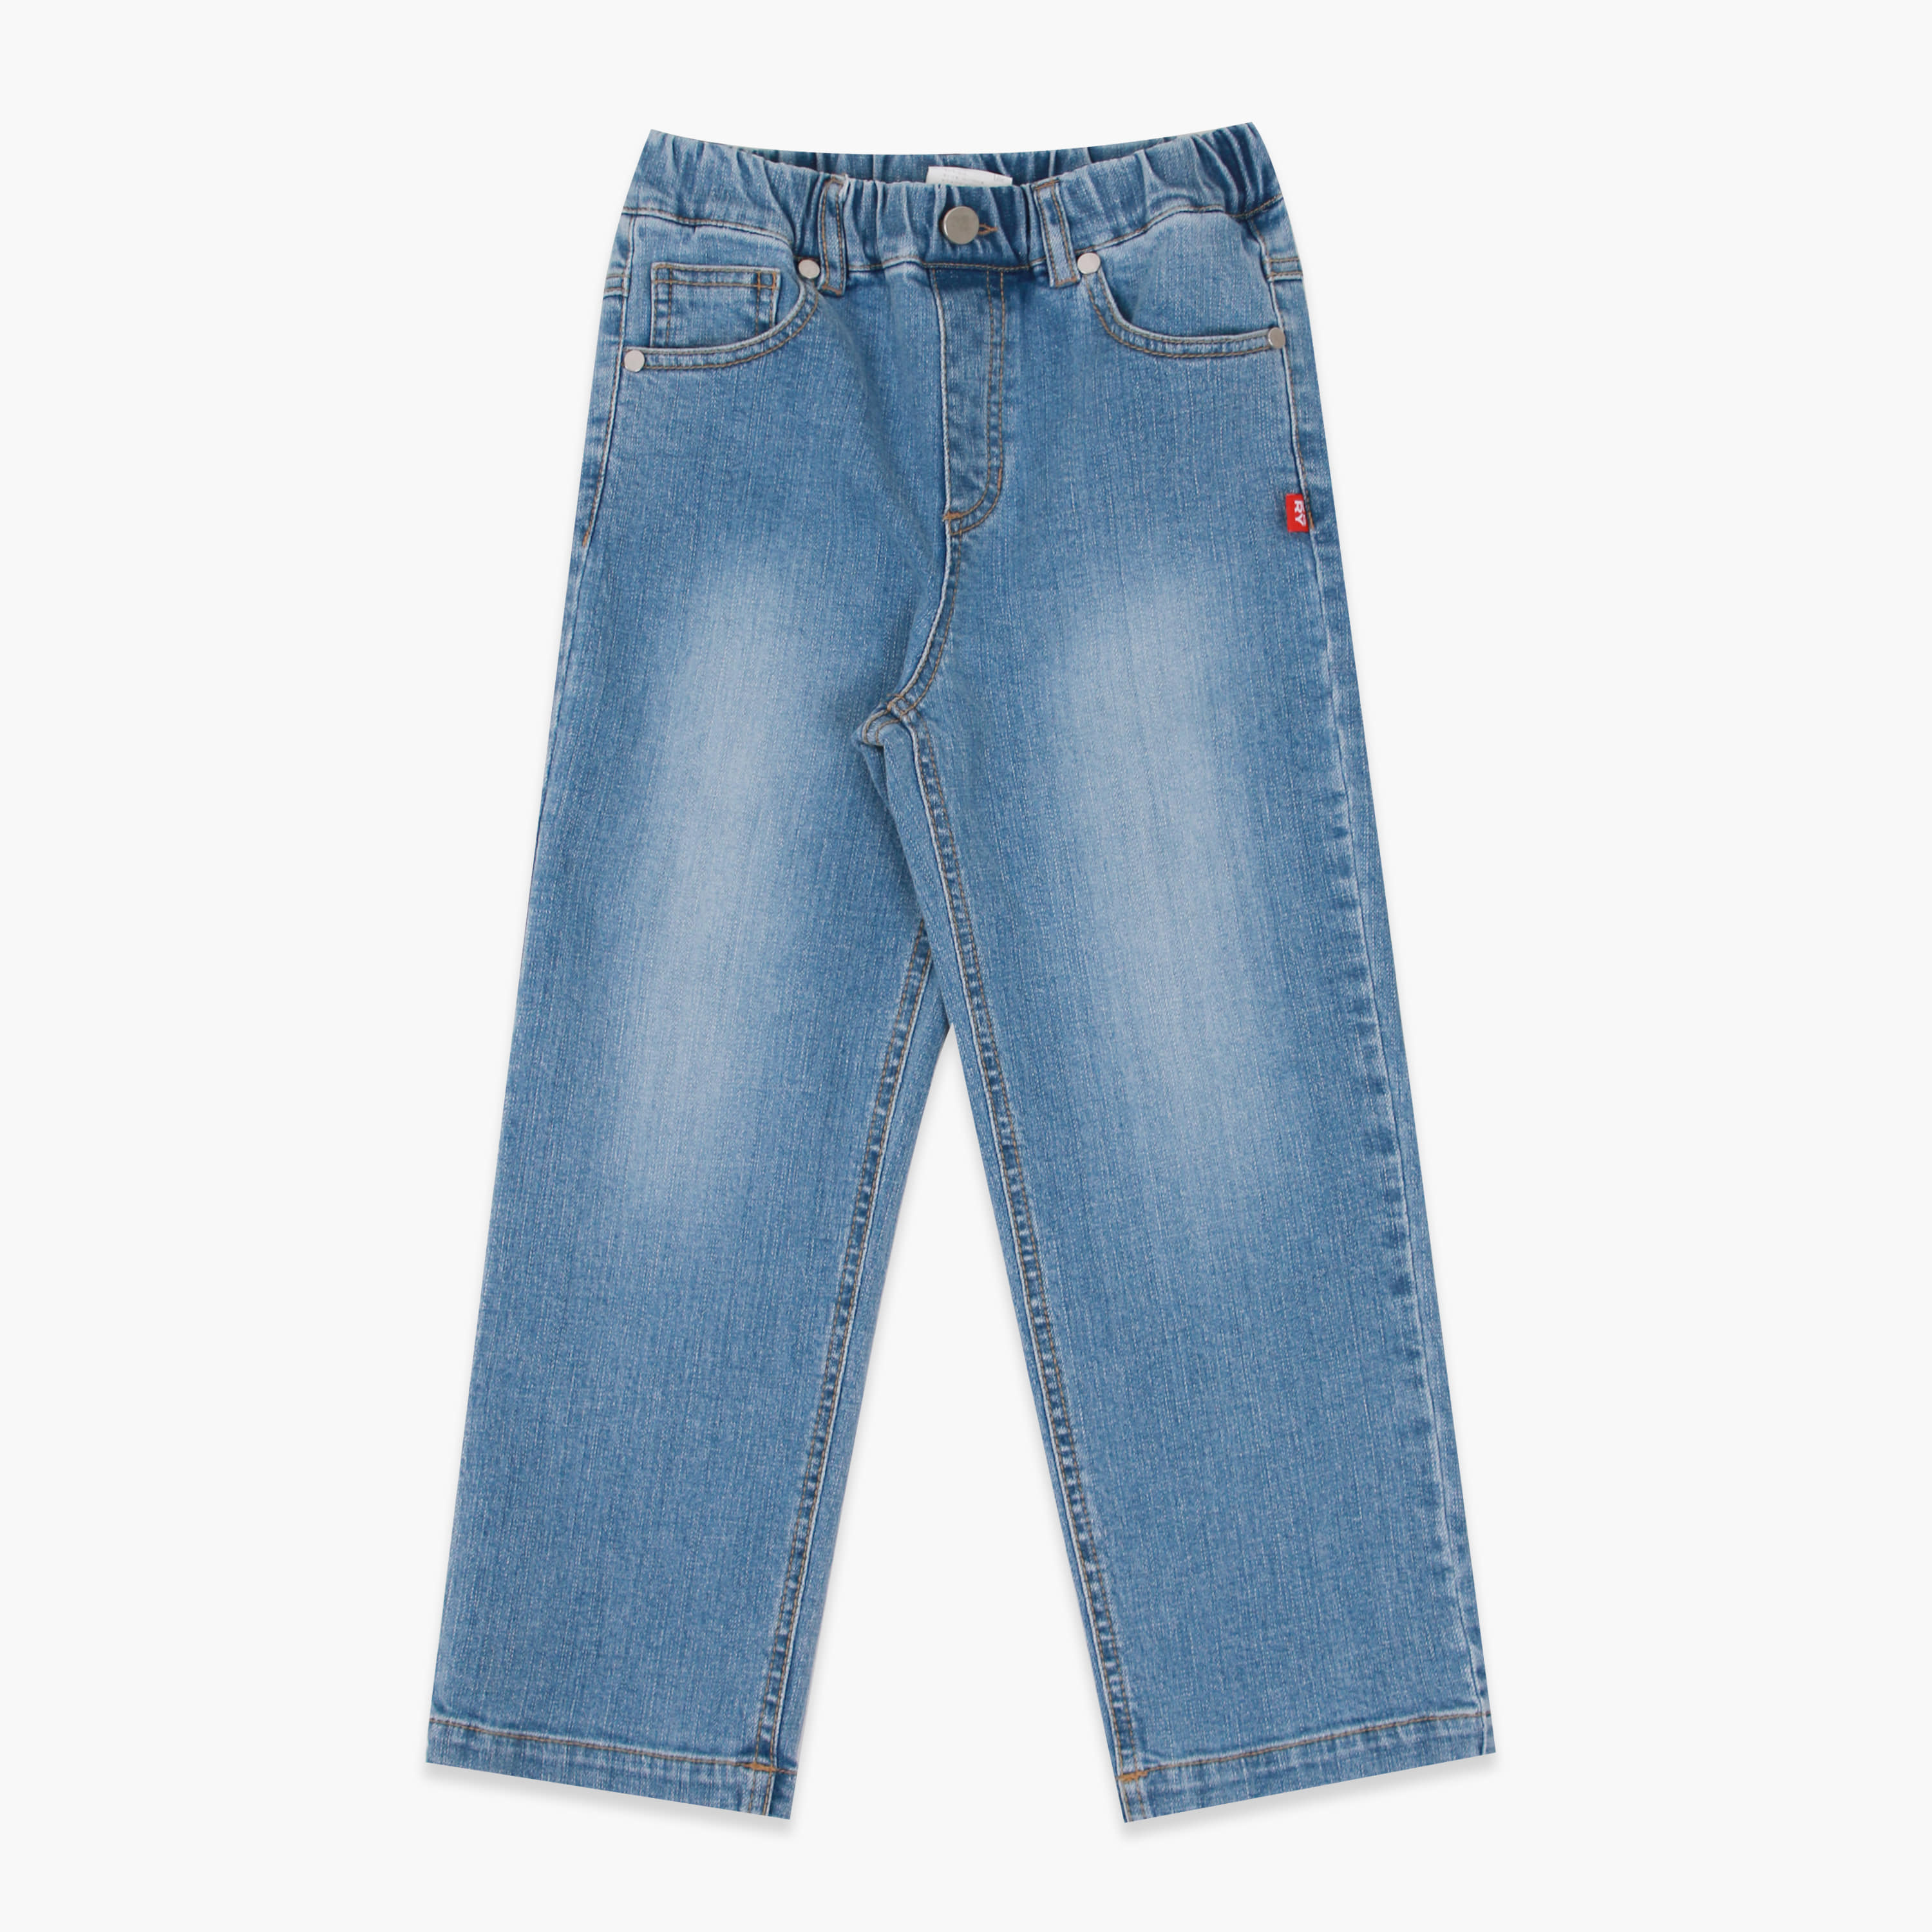 OORY 21 S/S Denim pants